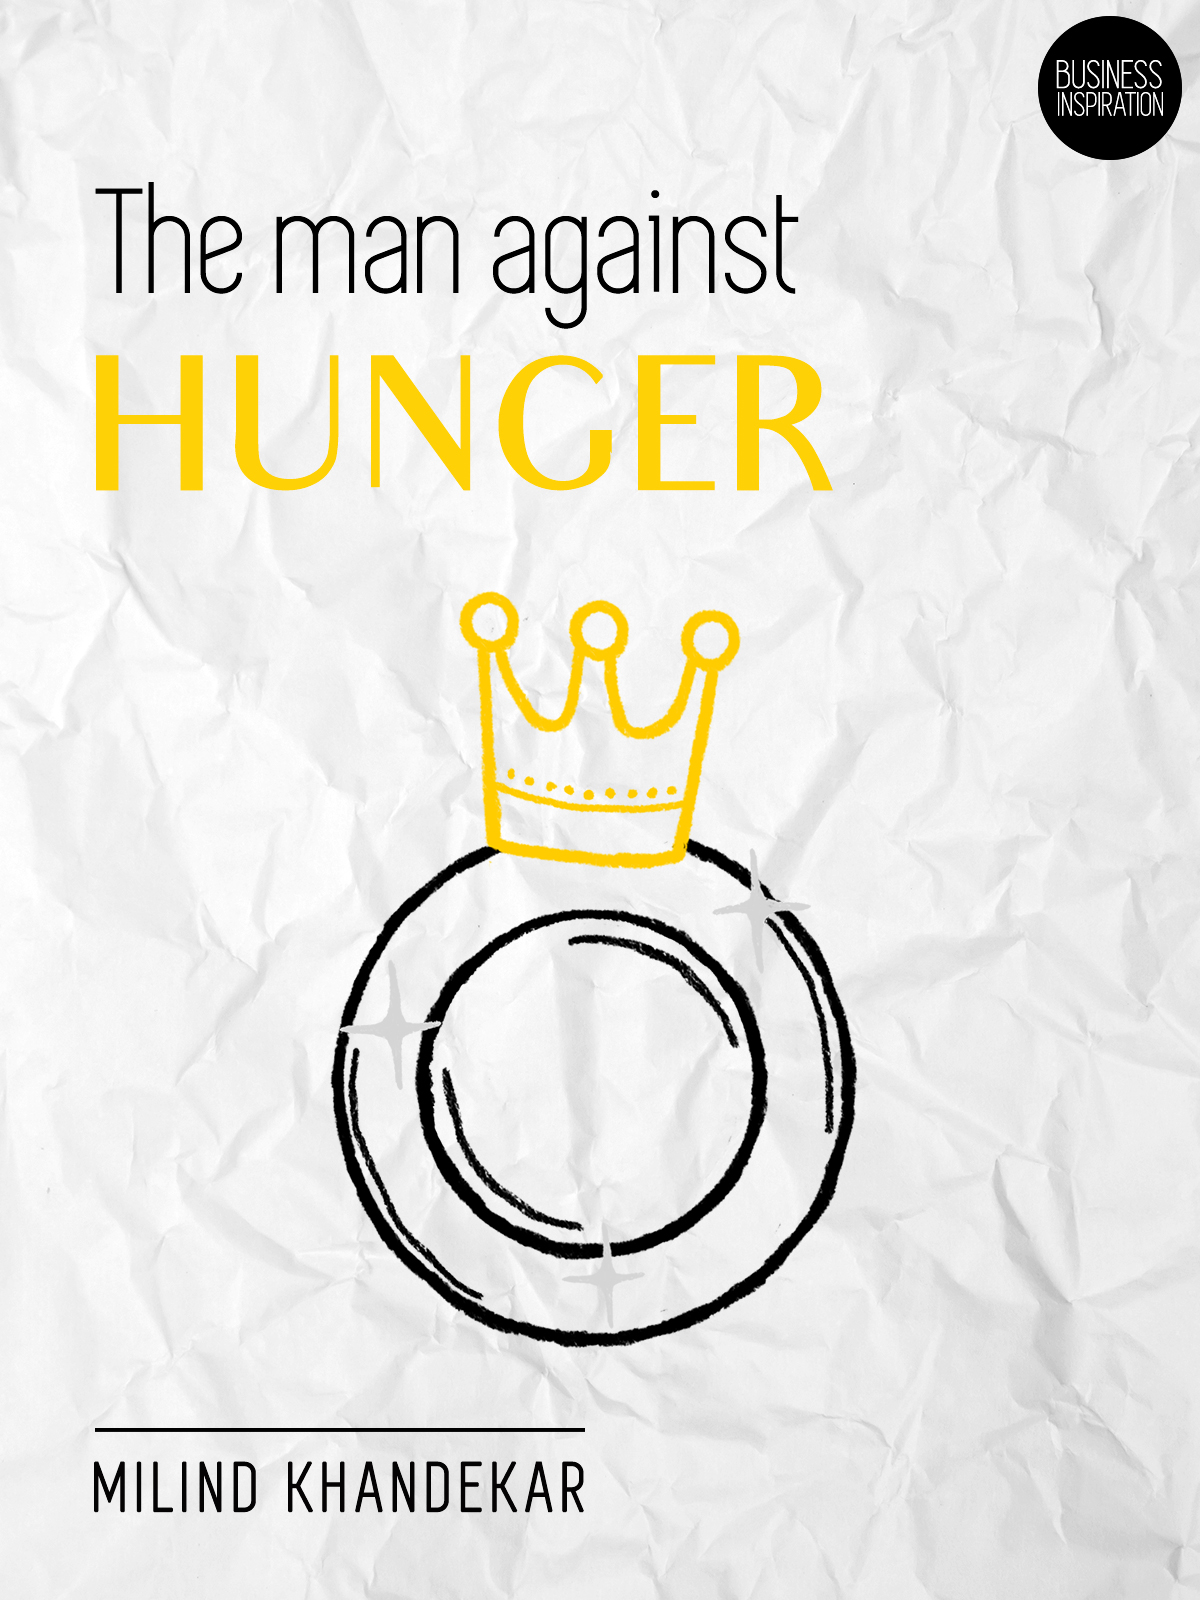 The man against hunger